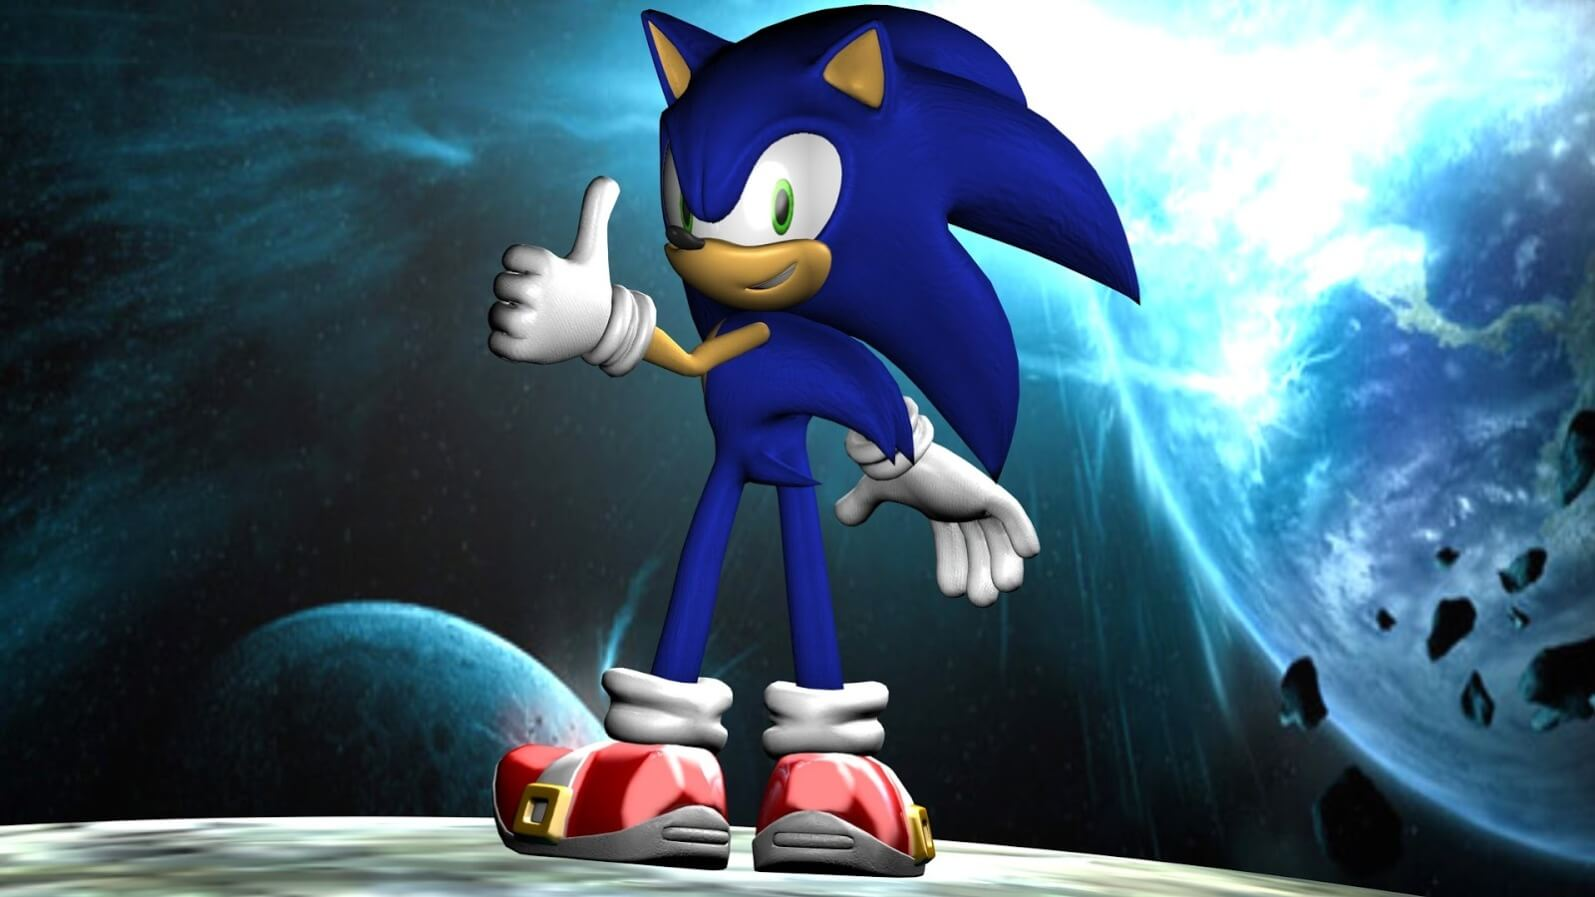 Super Sonic - Original image